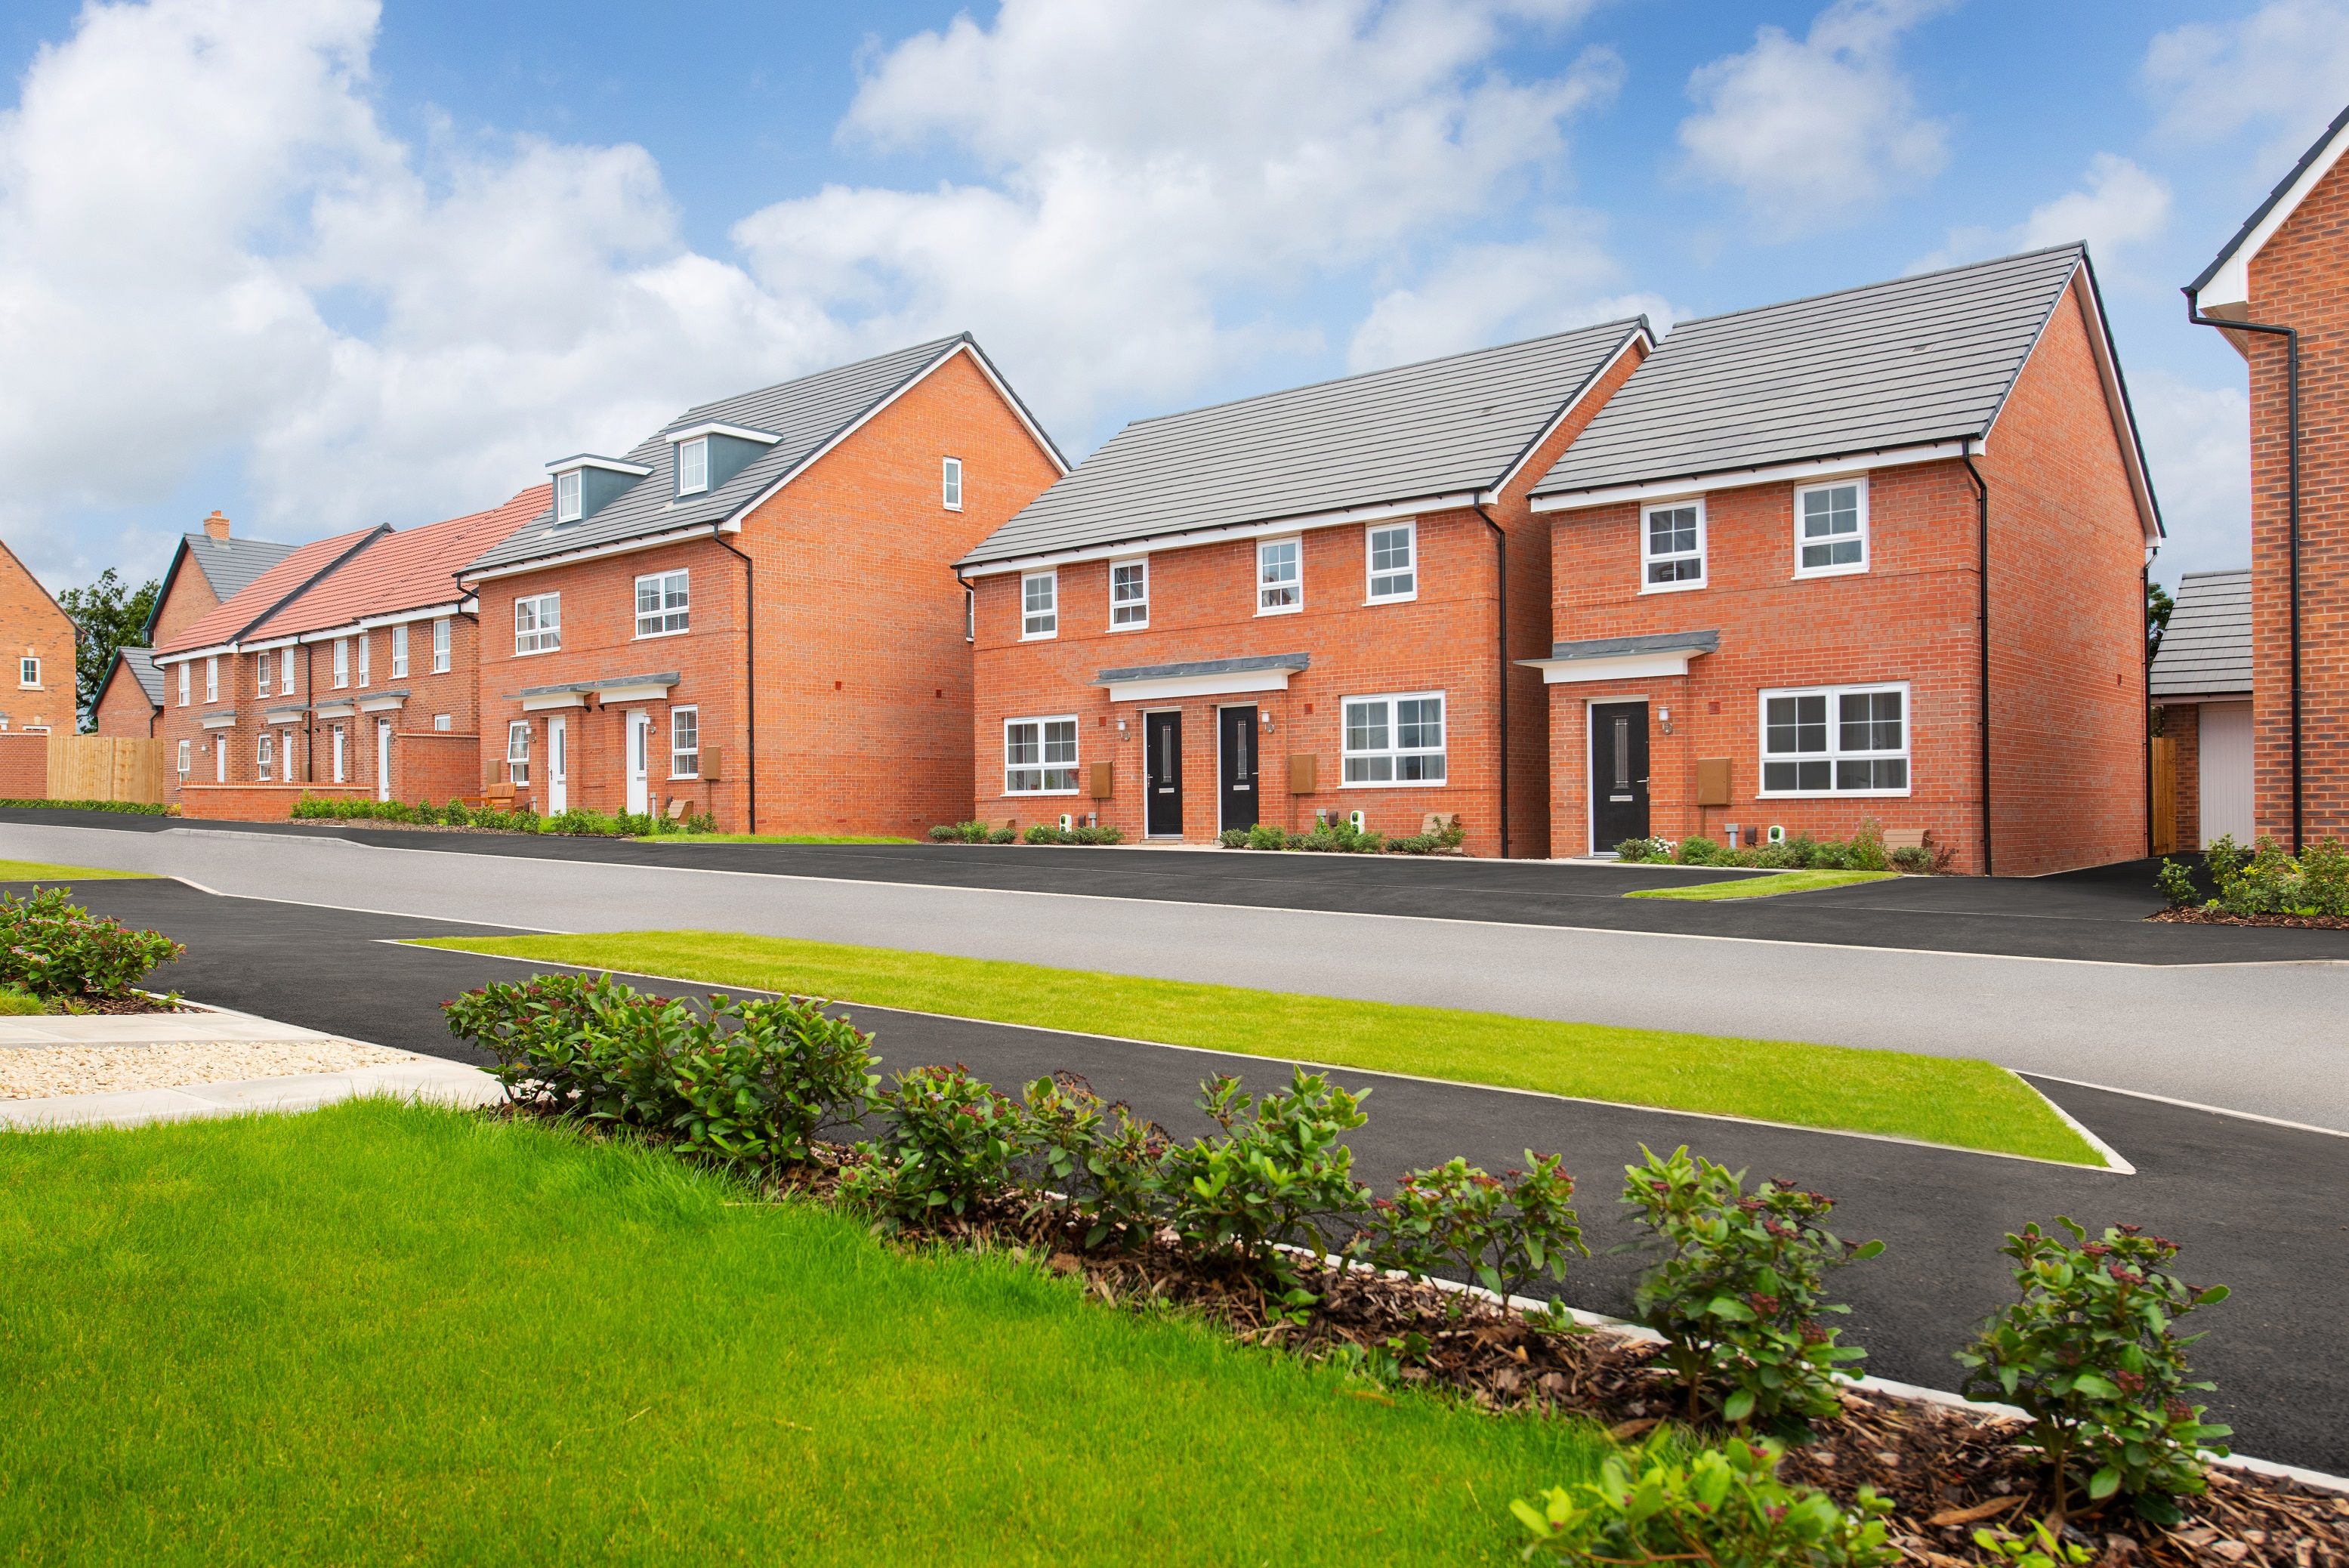 Barratt Homes West Midlands is offering property seekers the chance to make their new home work for them with a selection of three and four bedroom homes at its Warwick Gates development in Warwickshire.